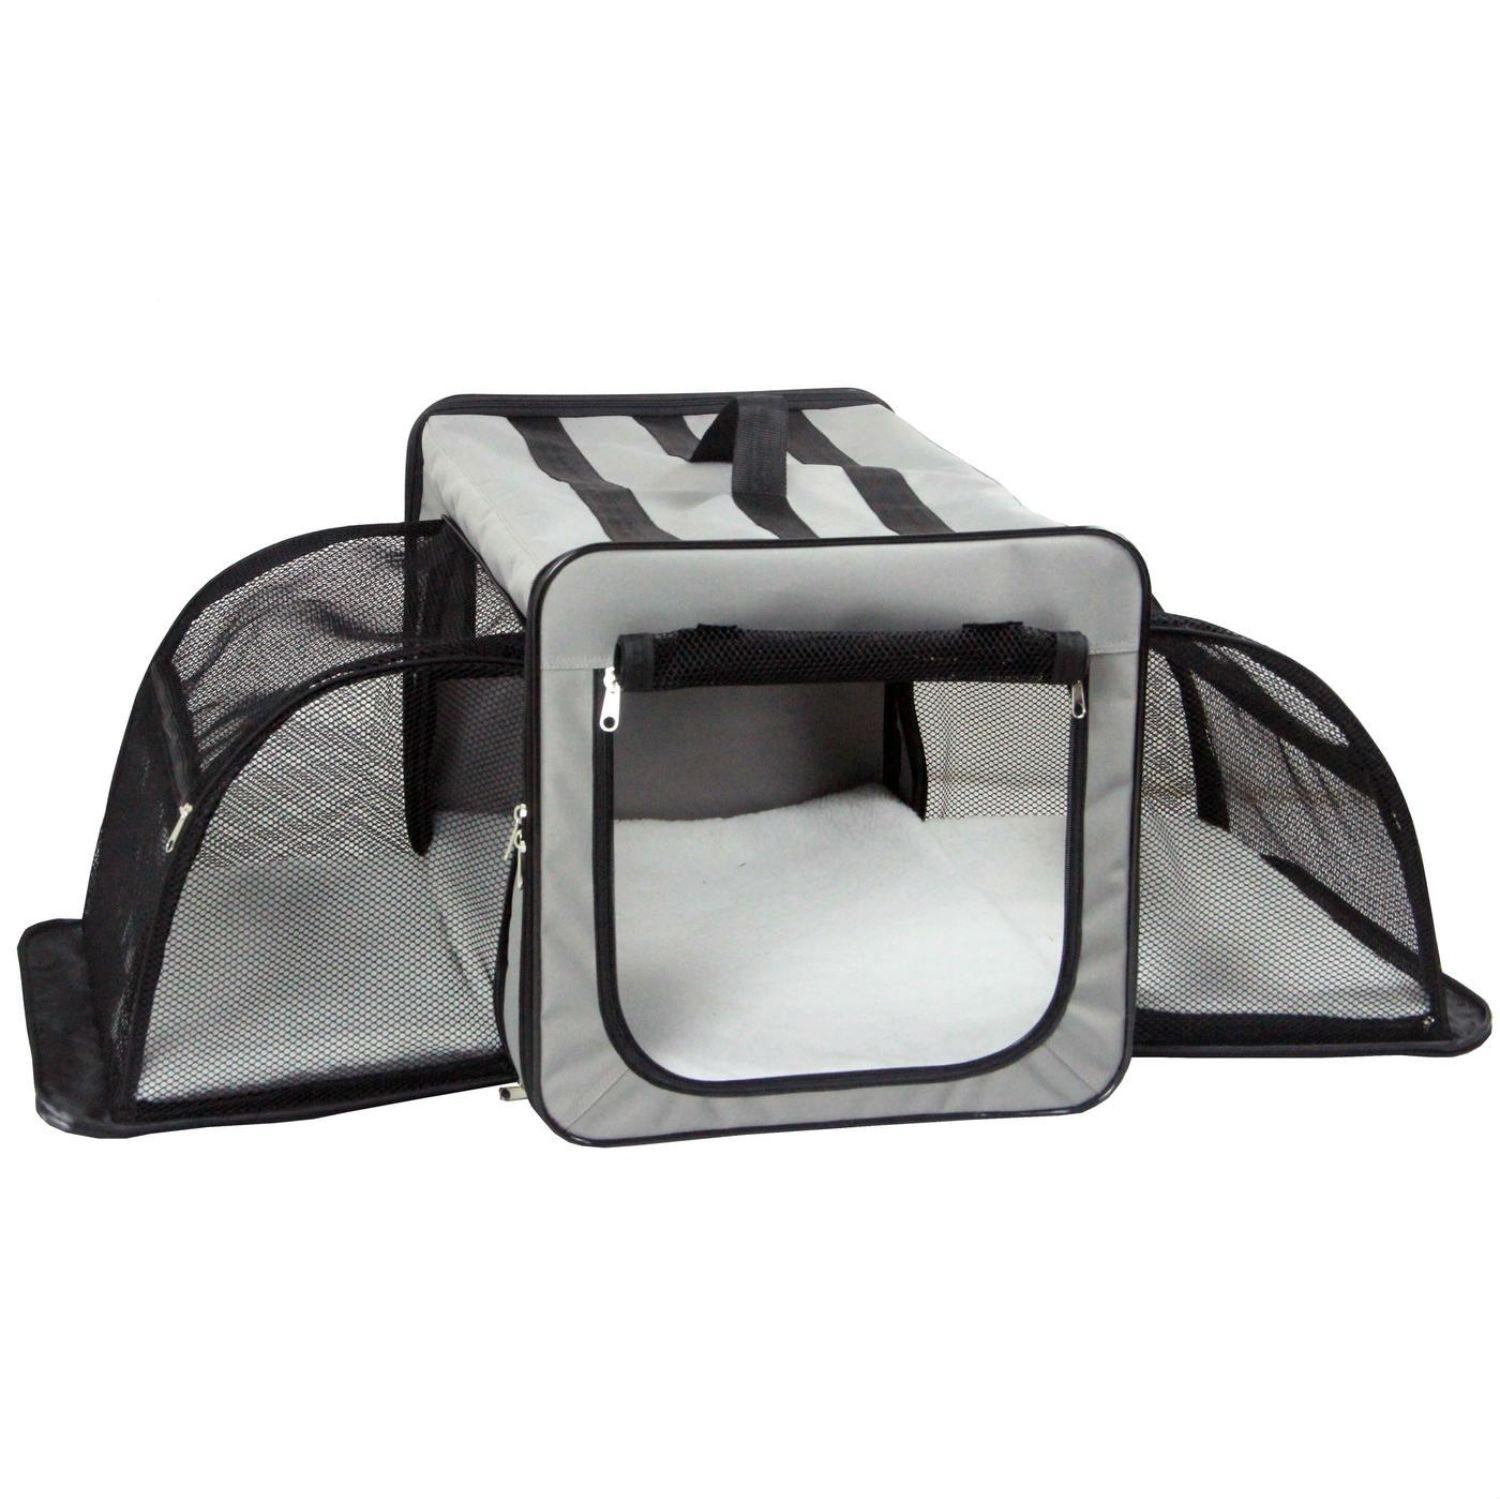 Pet Life Capacious Dual-Sided Expandable Dog Carrier - Gray